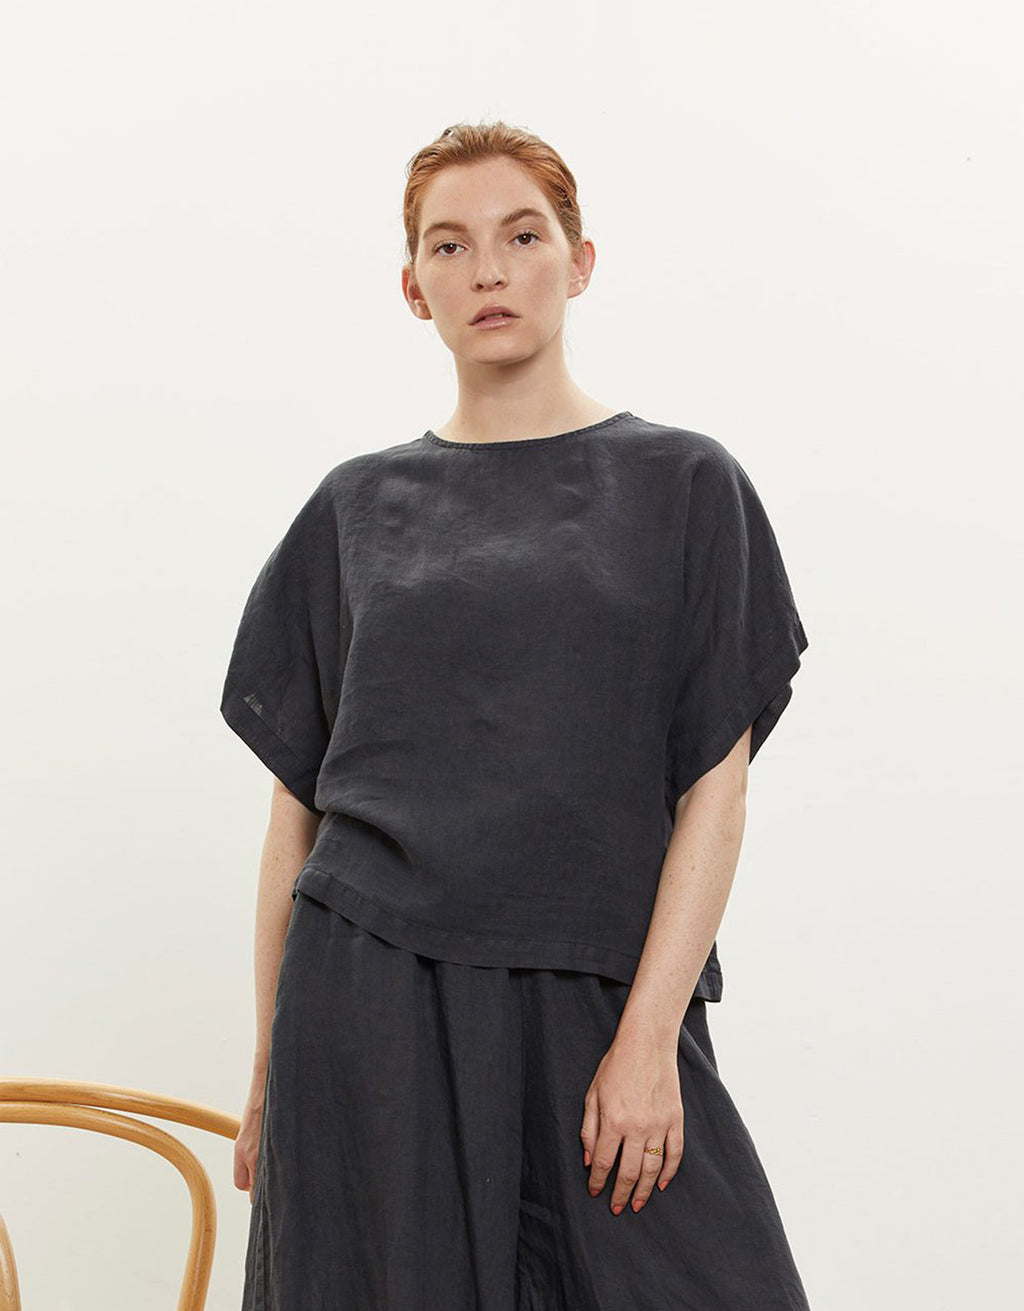 Model wears Black Crane Box top in Black. Available at FAWN Toronto.